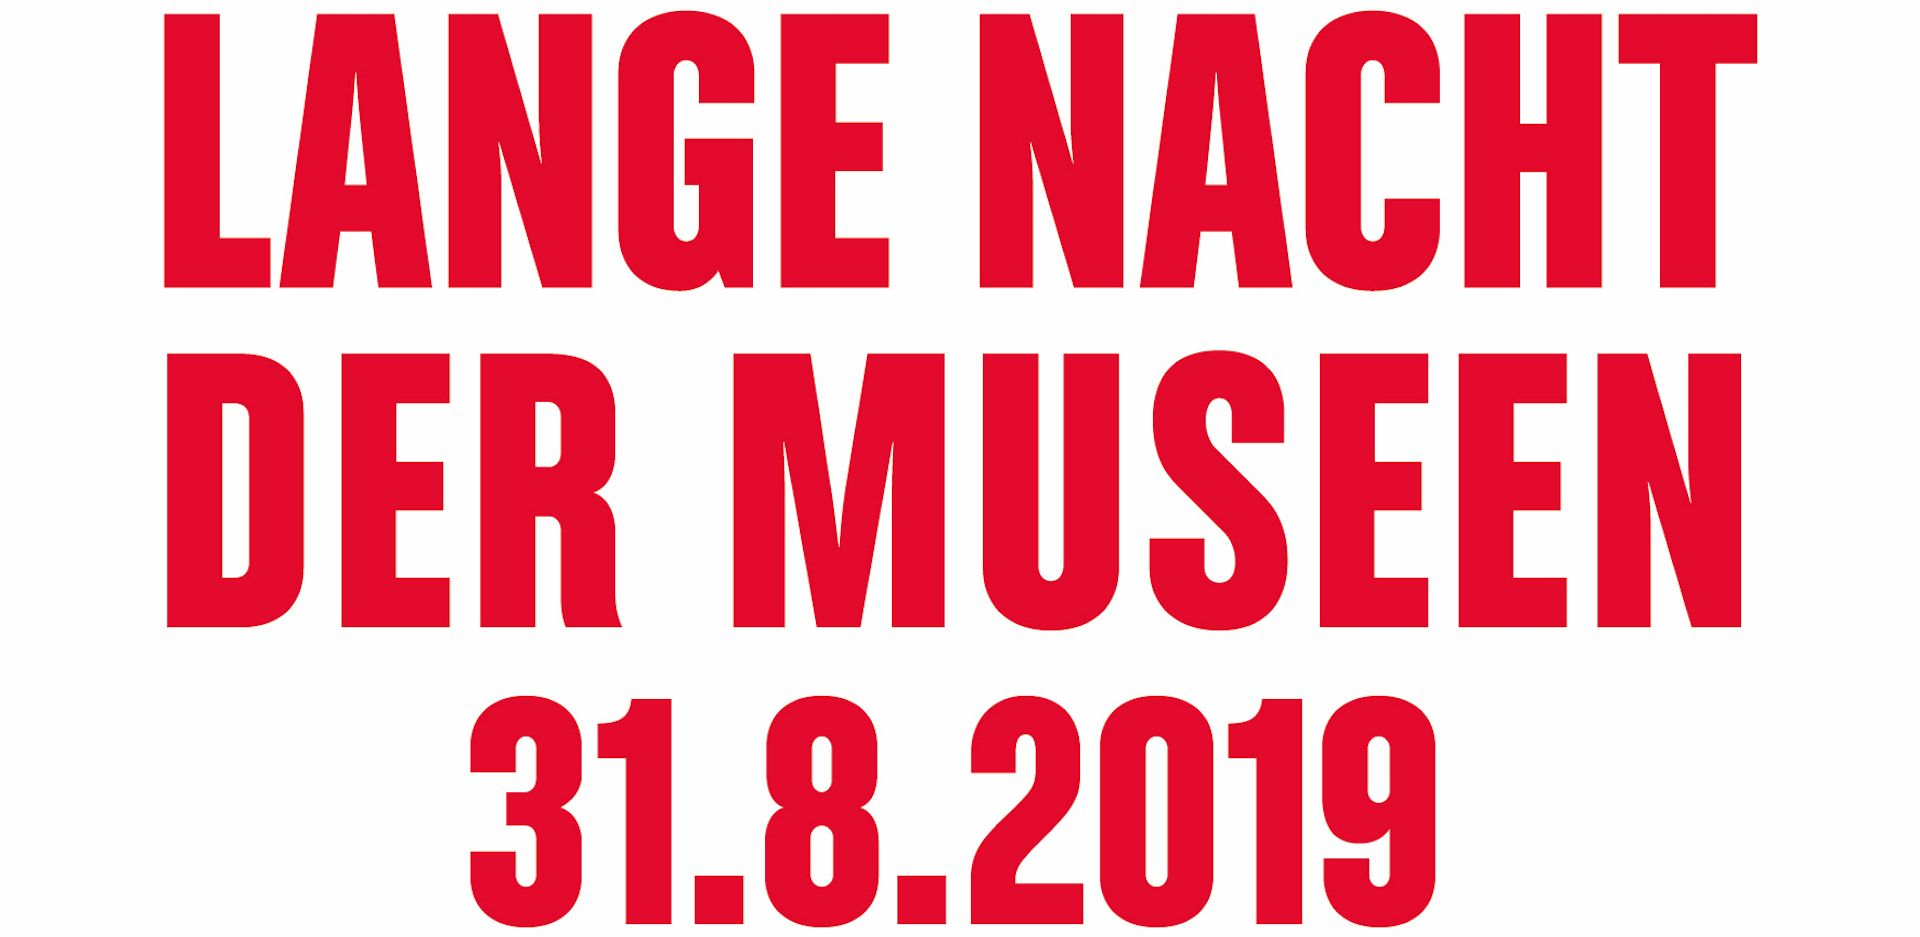 Long Night of Museums on 31. August 2019